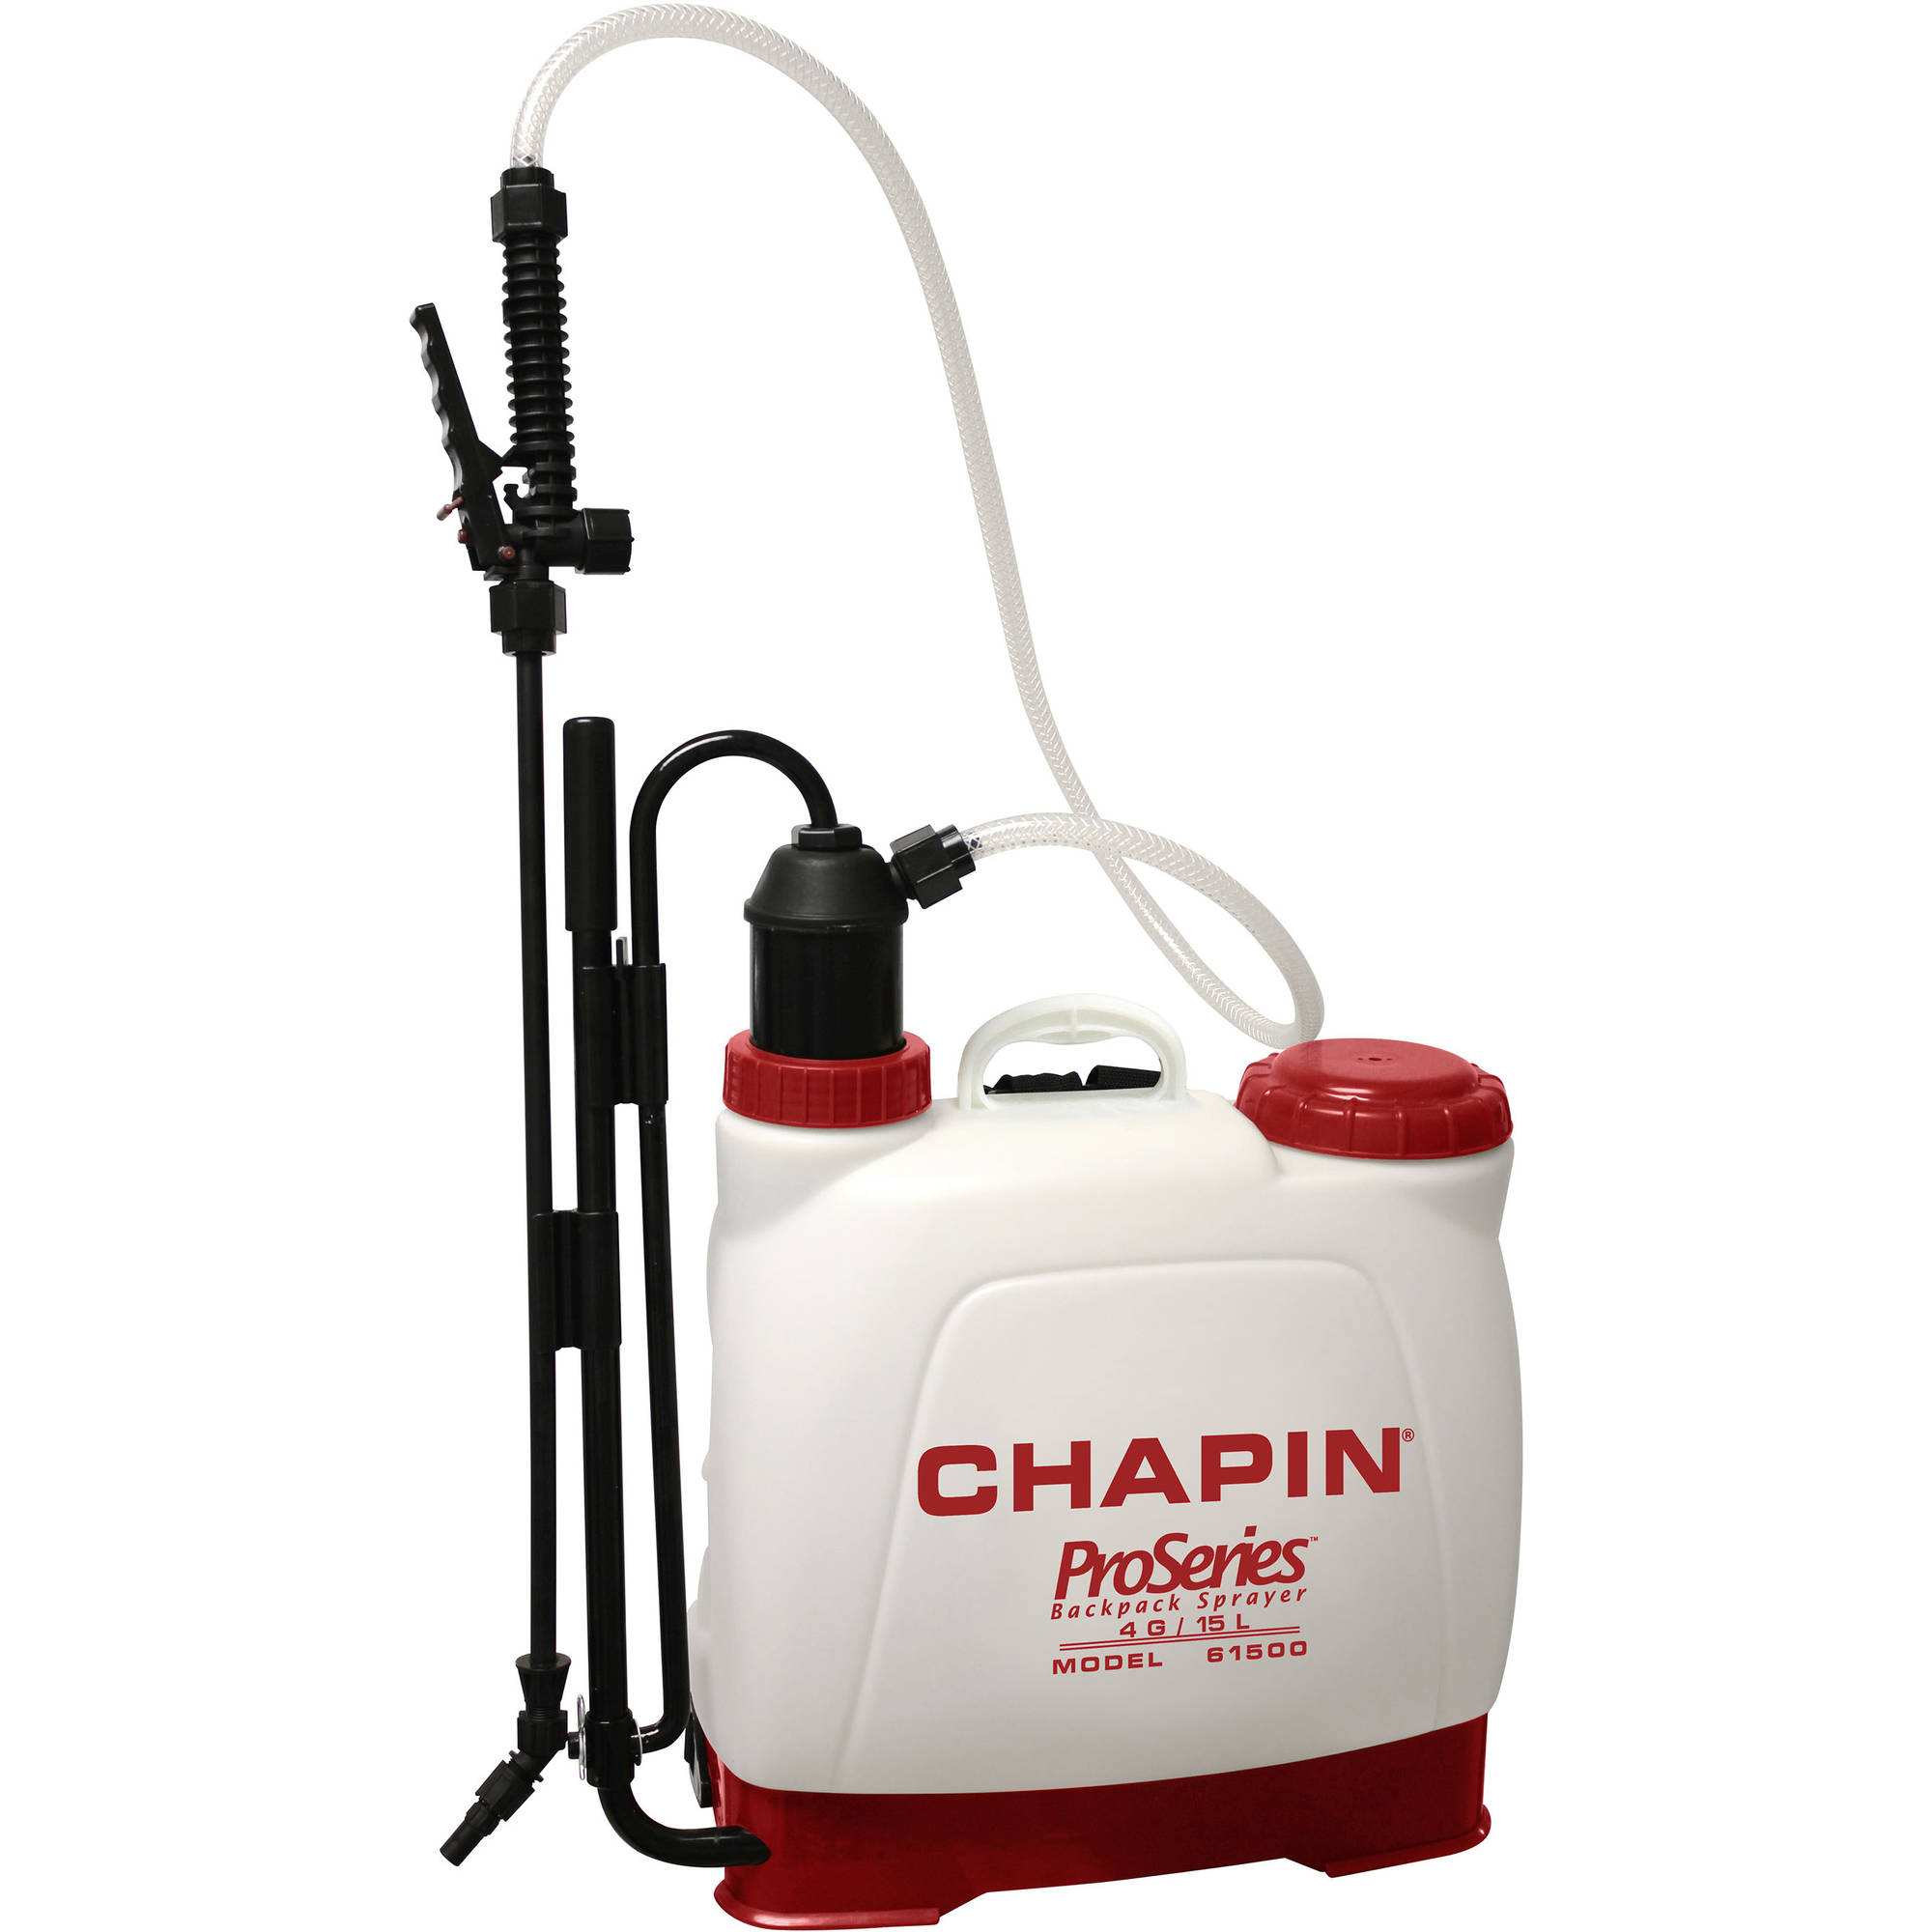 Chapin 61500 4-Gallon Euro Style Backpack Sprayer by Chapin Sprayers